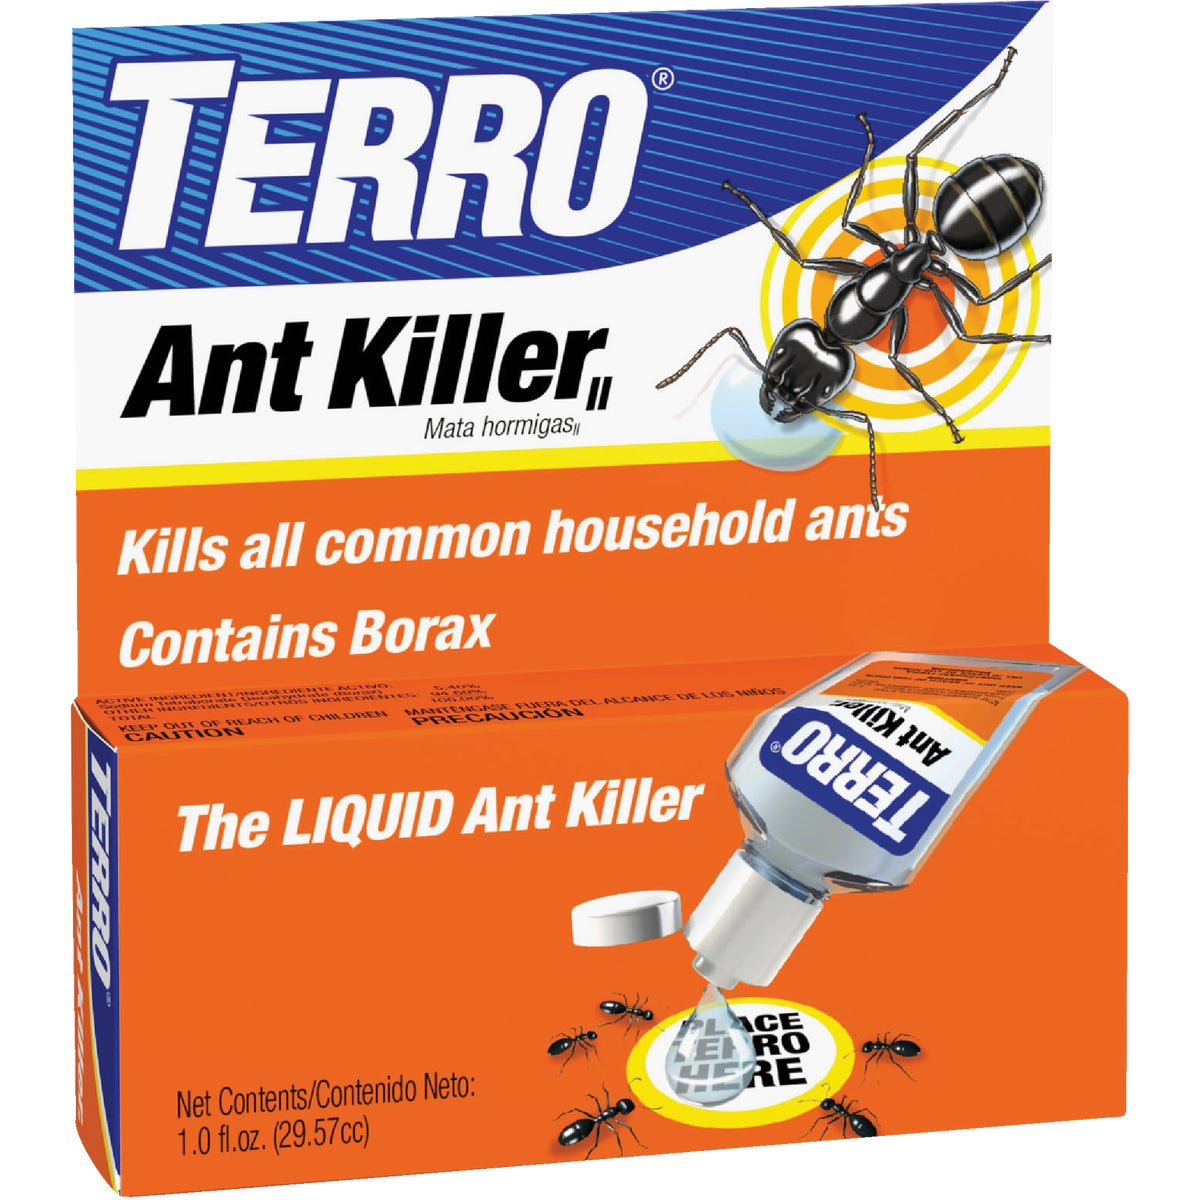 1OZ TERRO ANT KILLER - T100 by Woodstream Corp